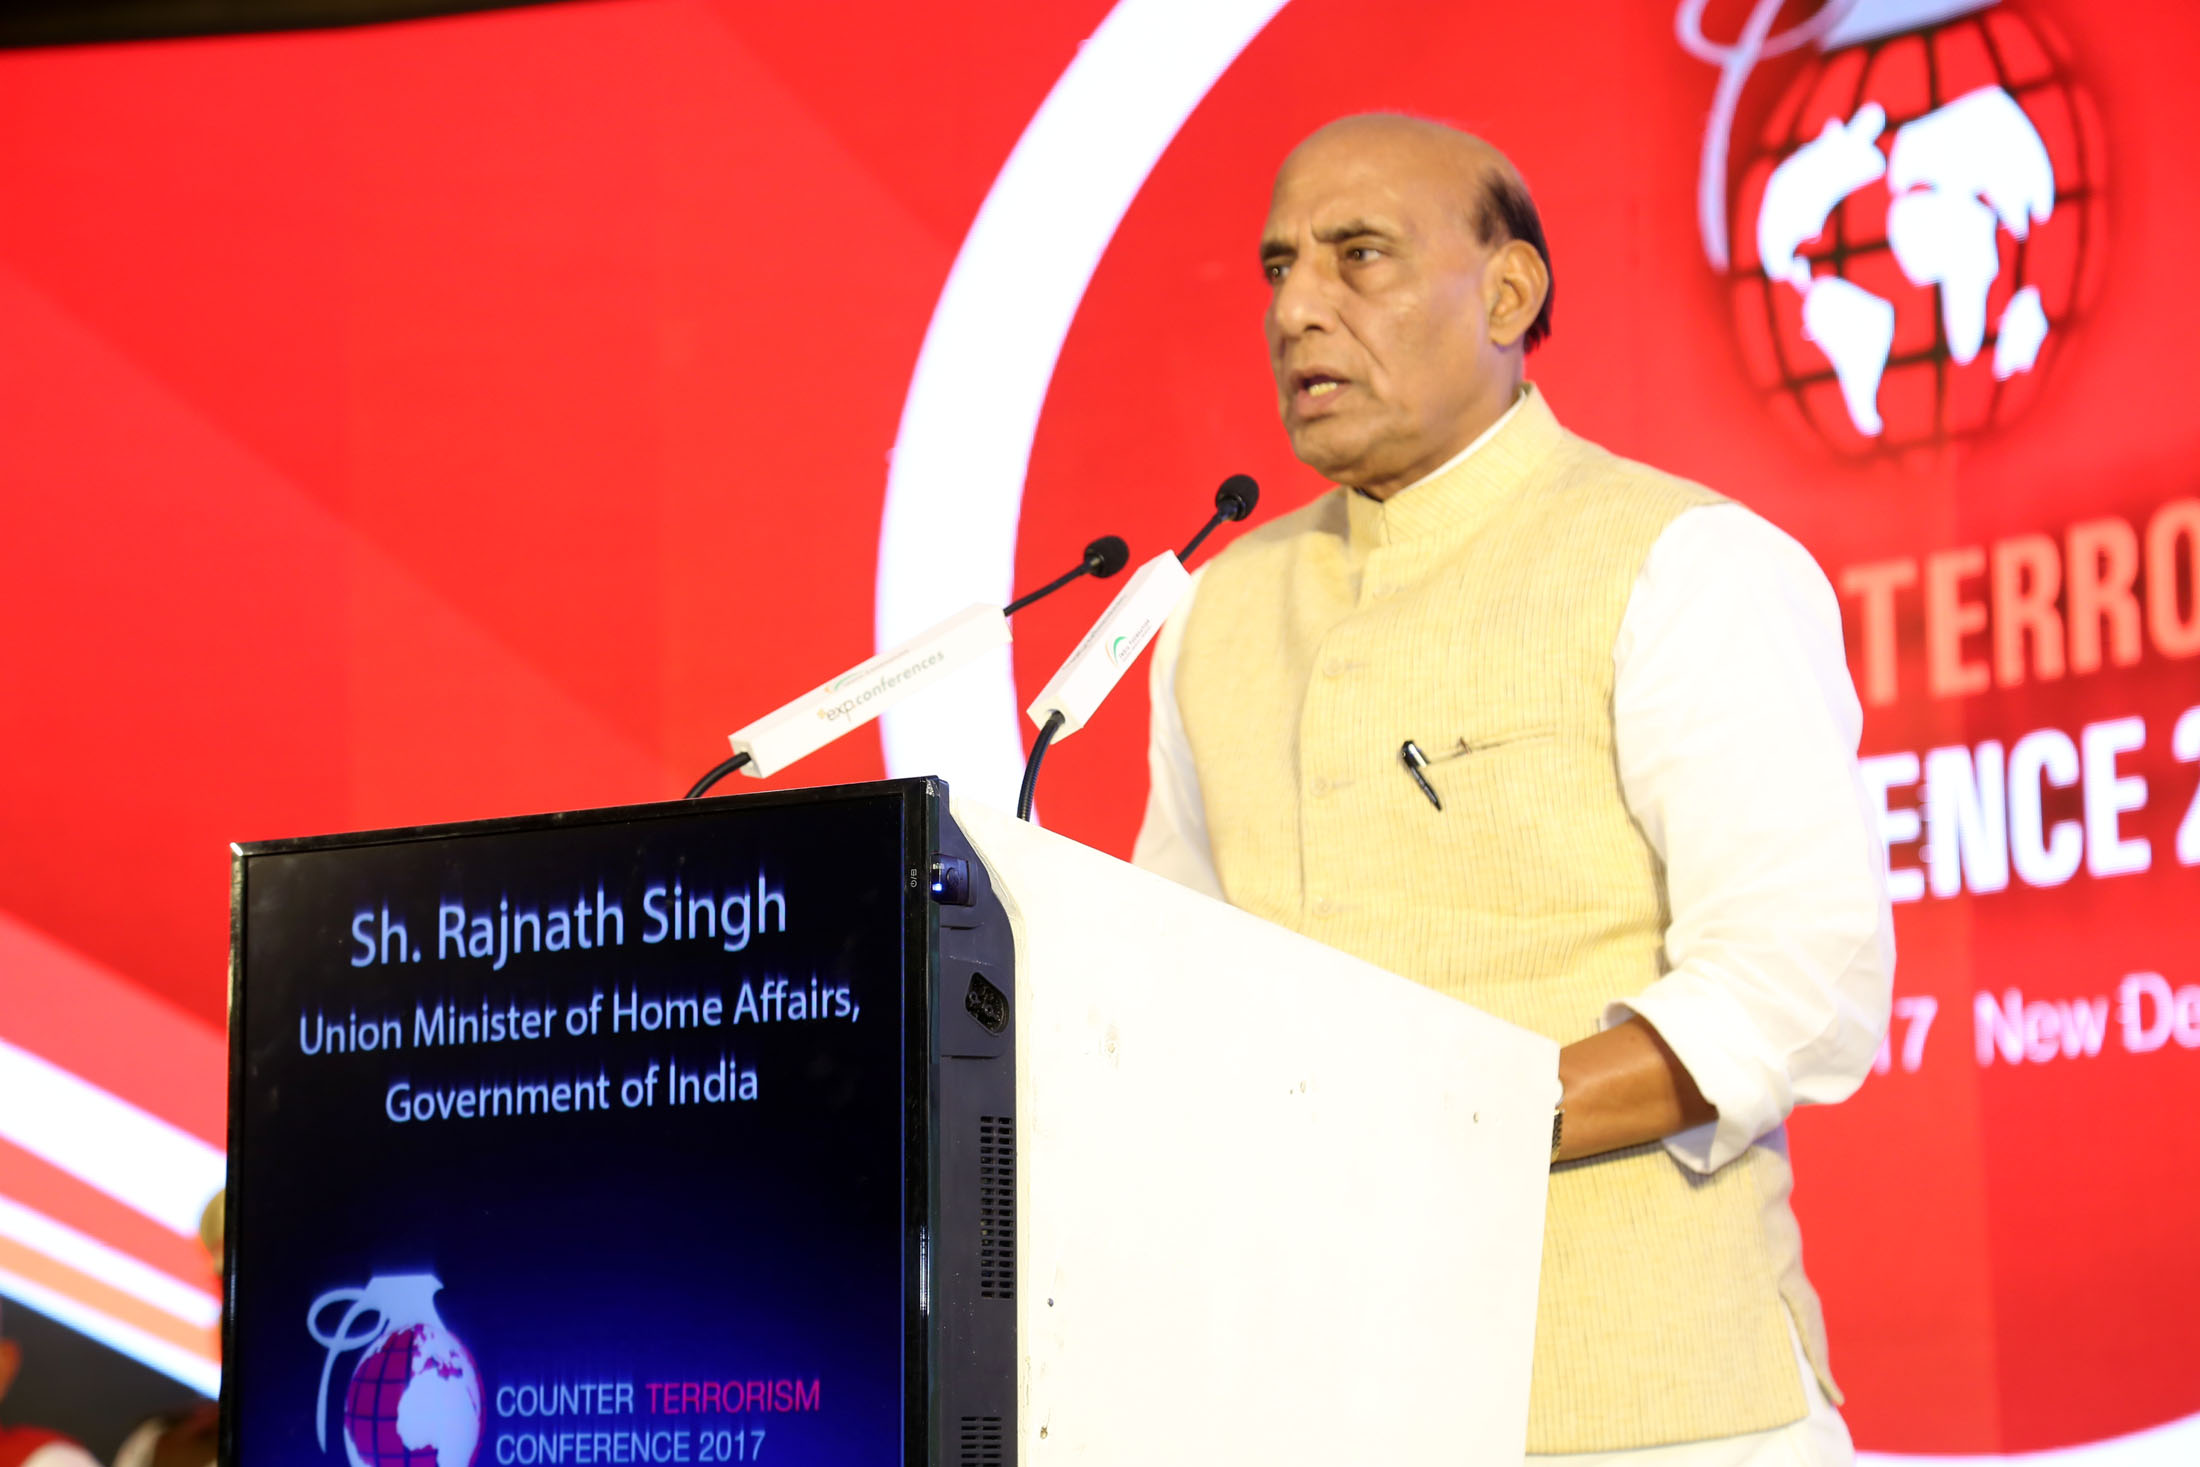 The Union Home Minister, Shri Rajnath Singh addressing at the Counter Terrorism Conference, in New Delhi on March 16, 2017.